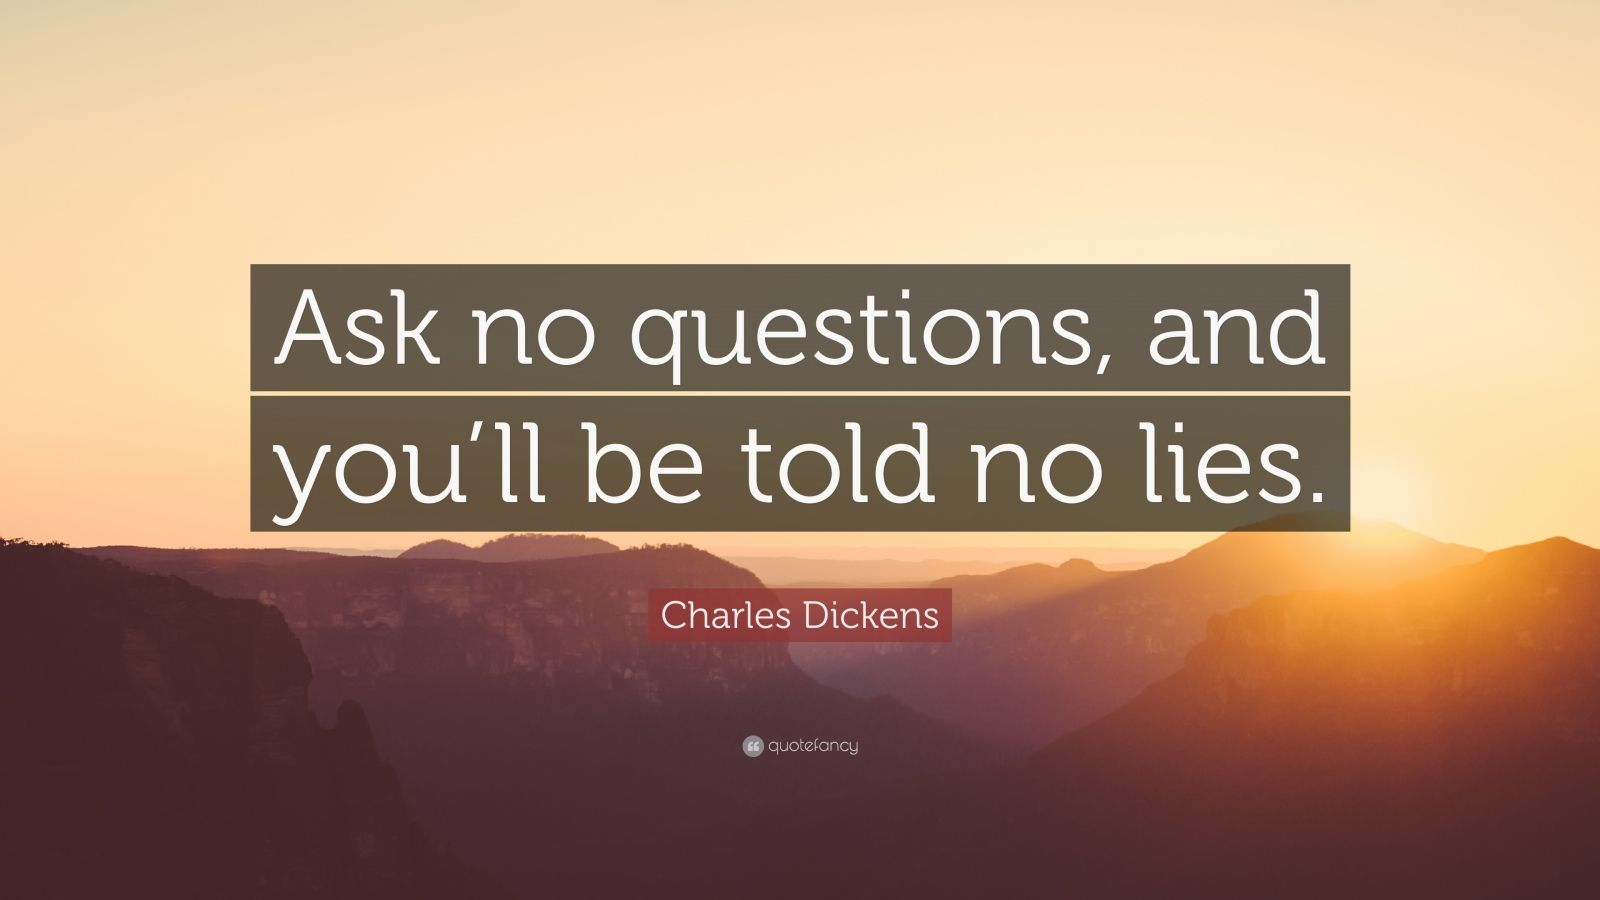 Nietzsche Quotes Wallpaper Charles Dickens Quote Ask No Questions And You Ll Be